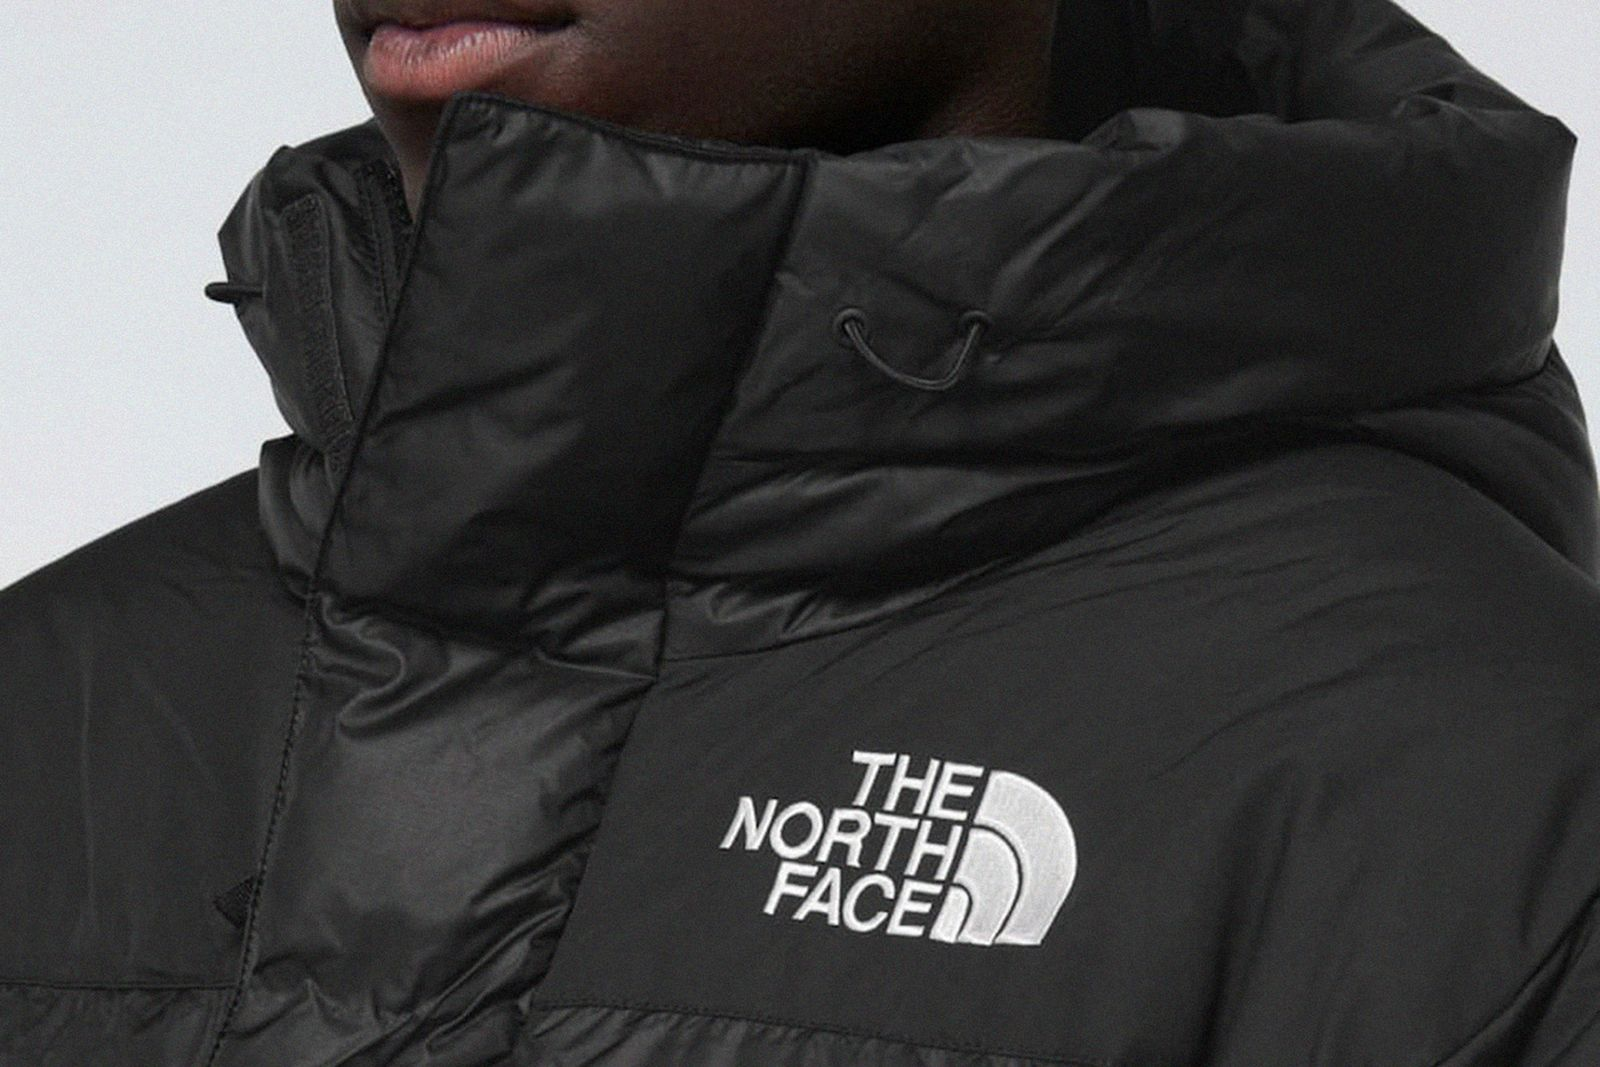 down jackets image